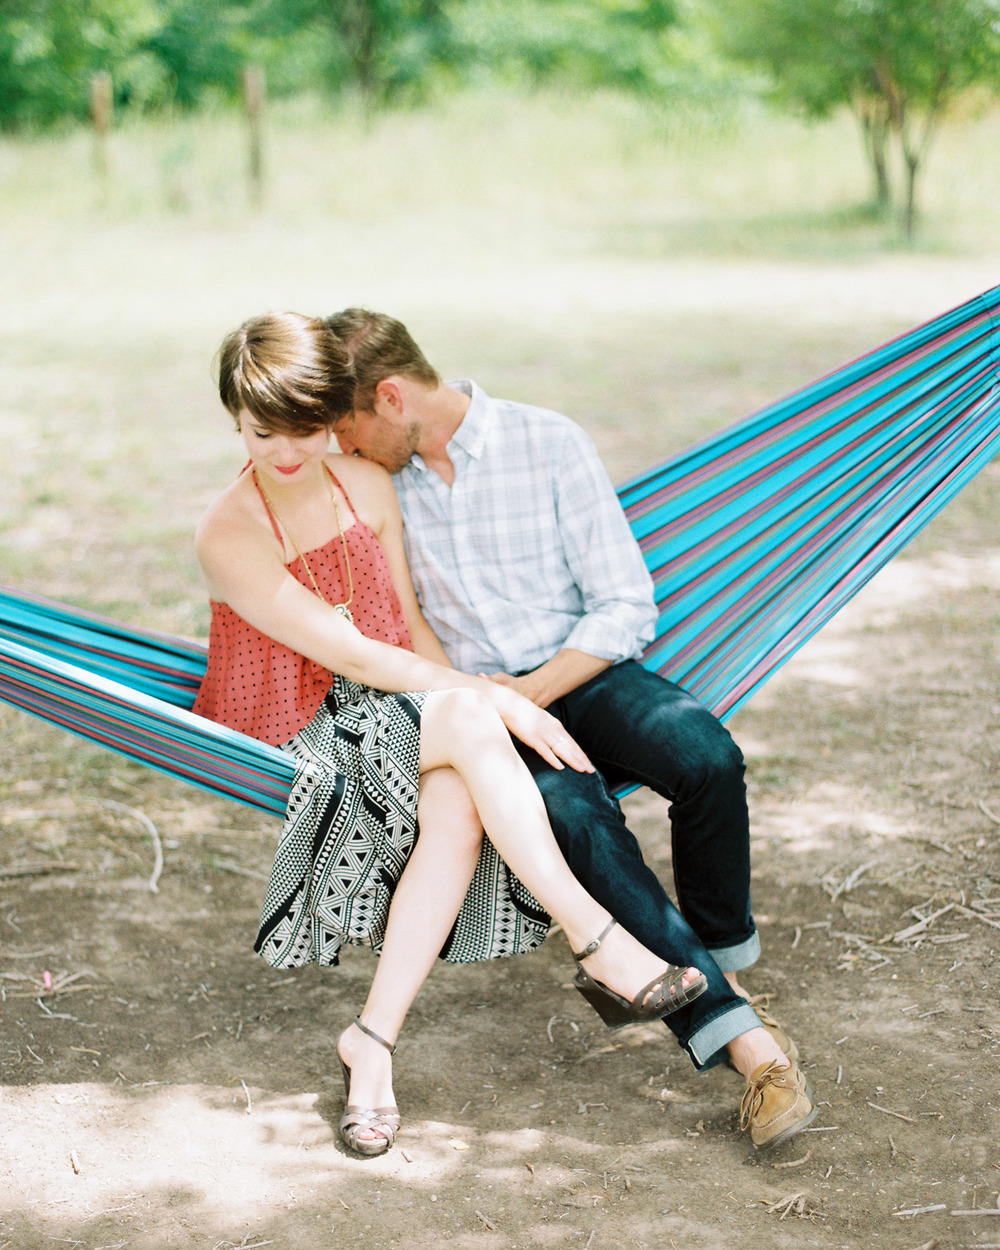 MARFA WEDDING PHOTOGRAPHER : JESSICA GARMON